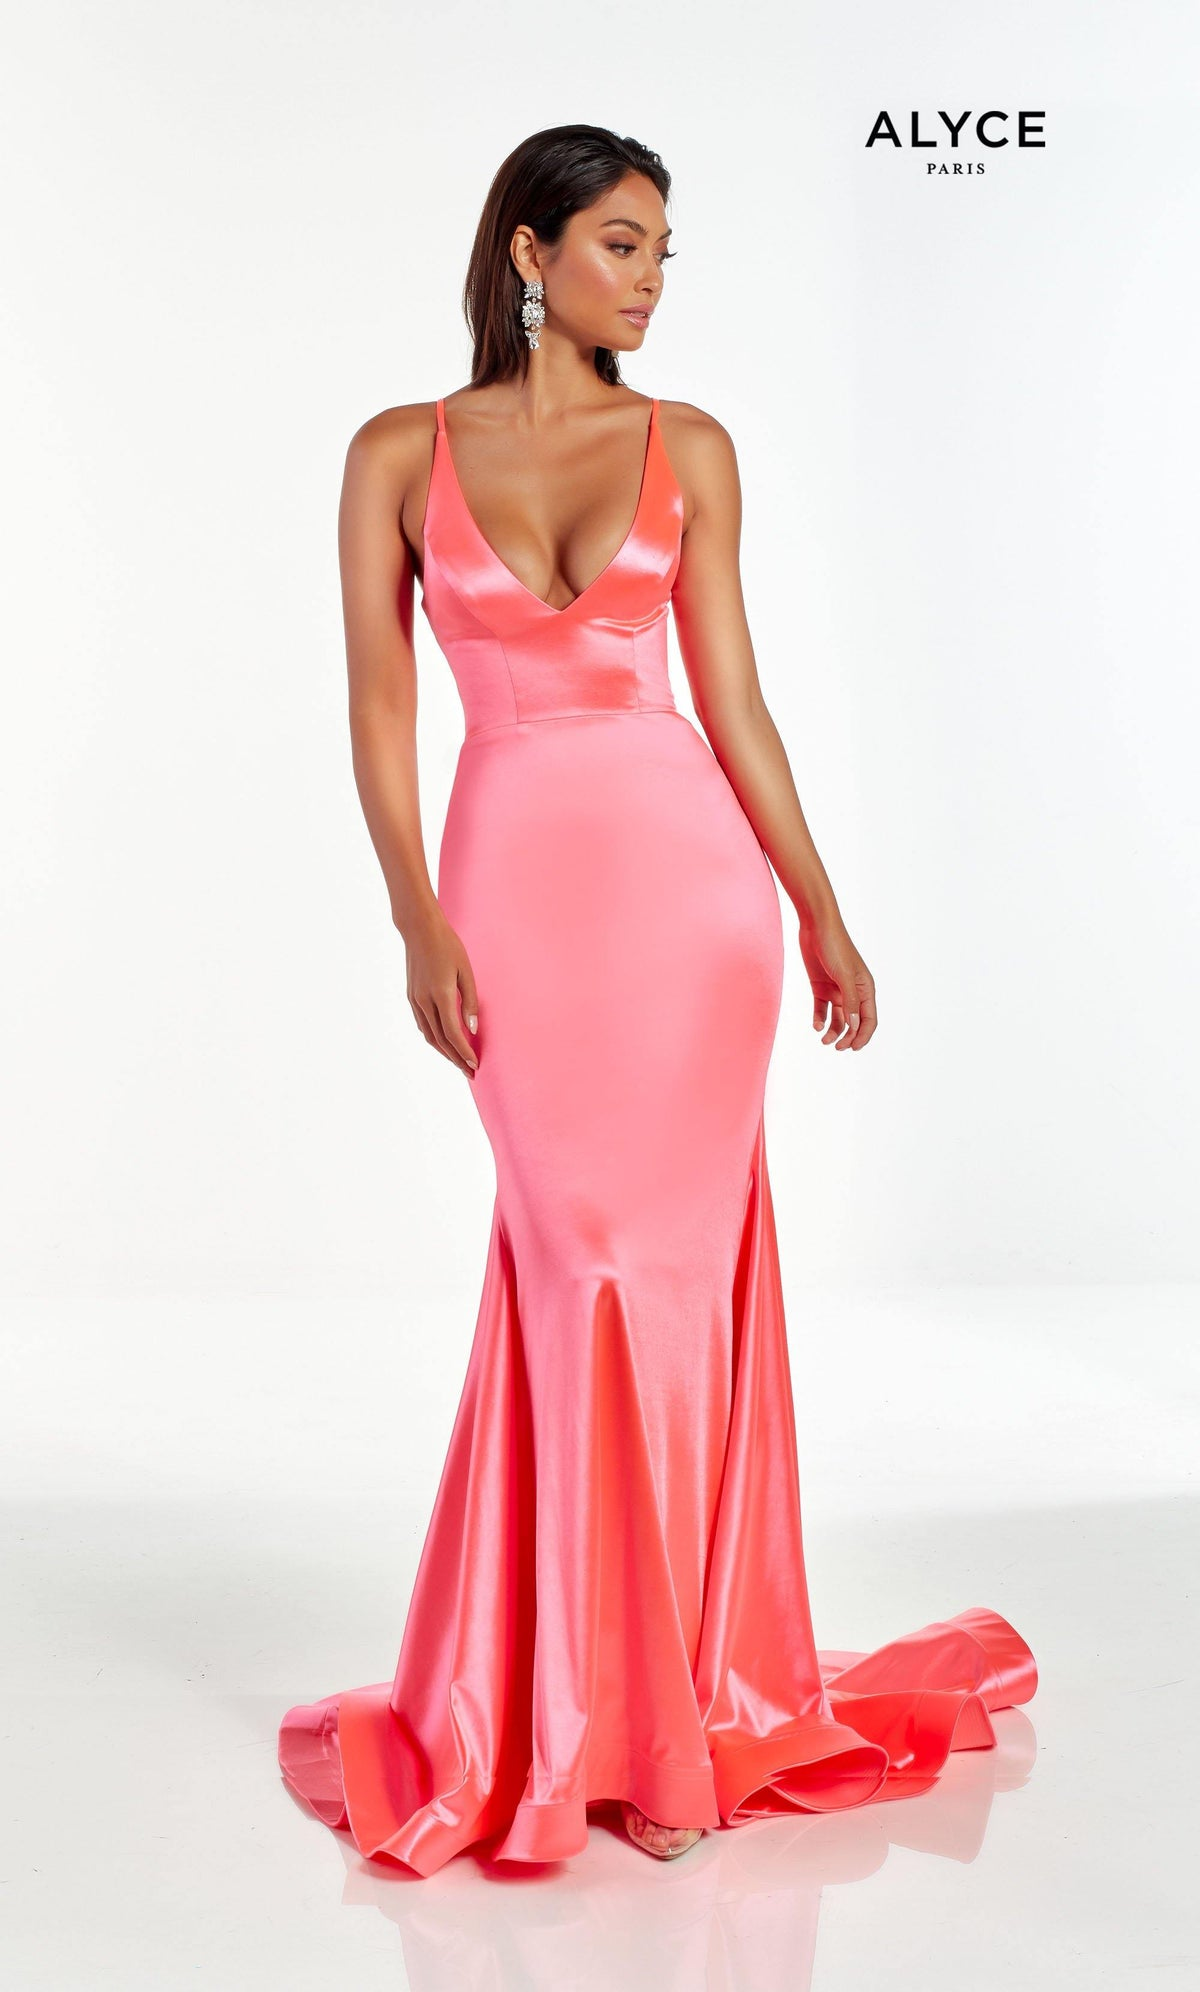 Pink stretch satin prom dress with a plunging neckline